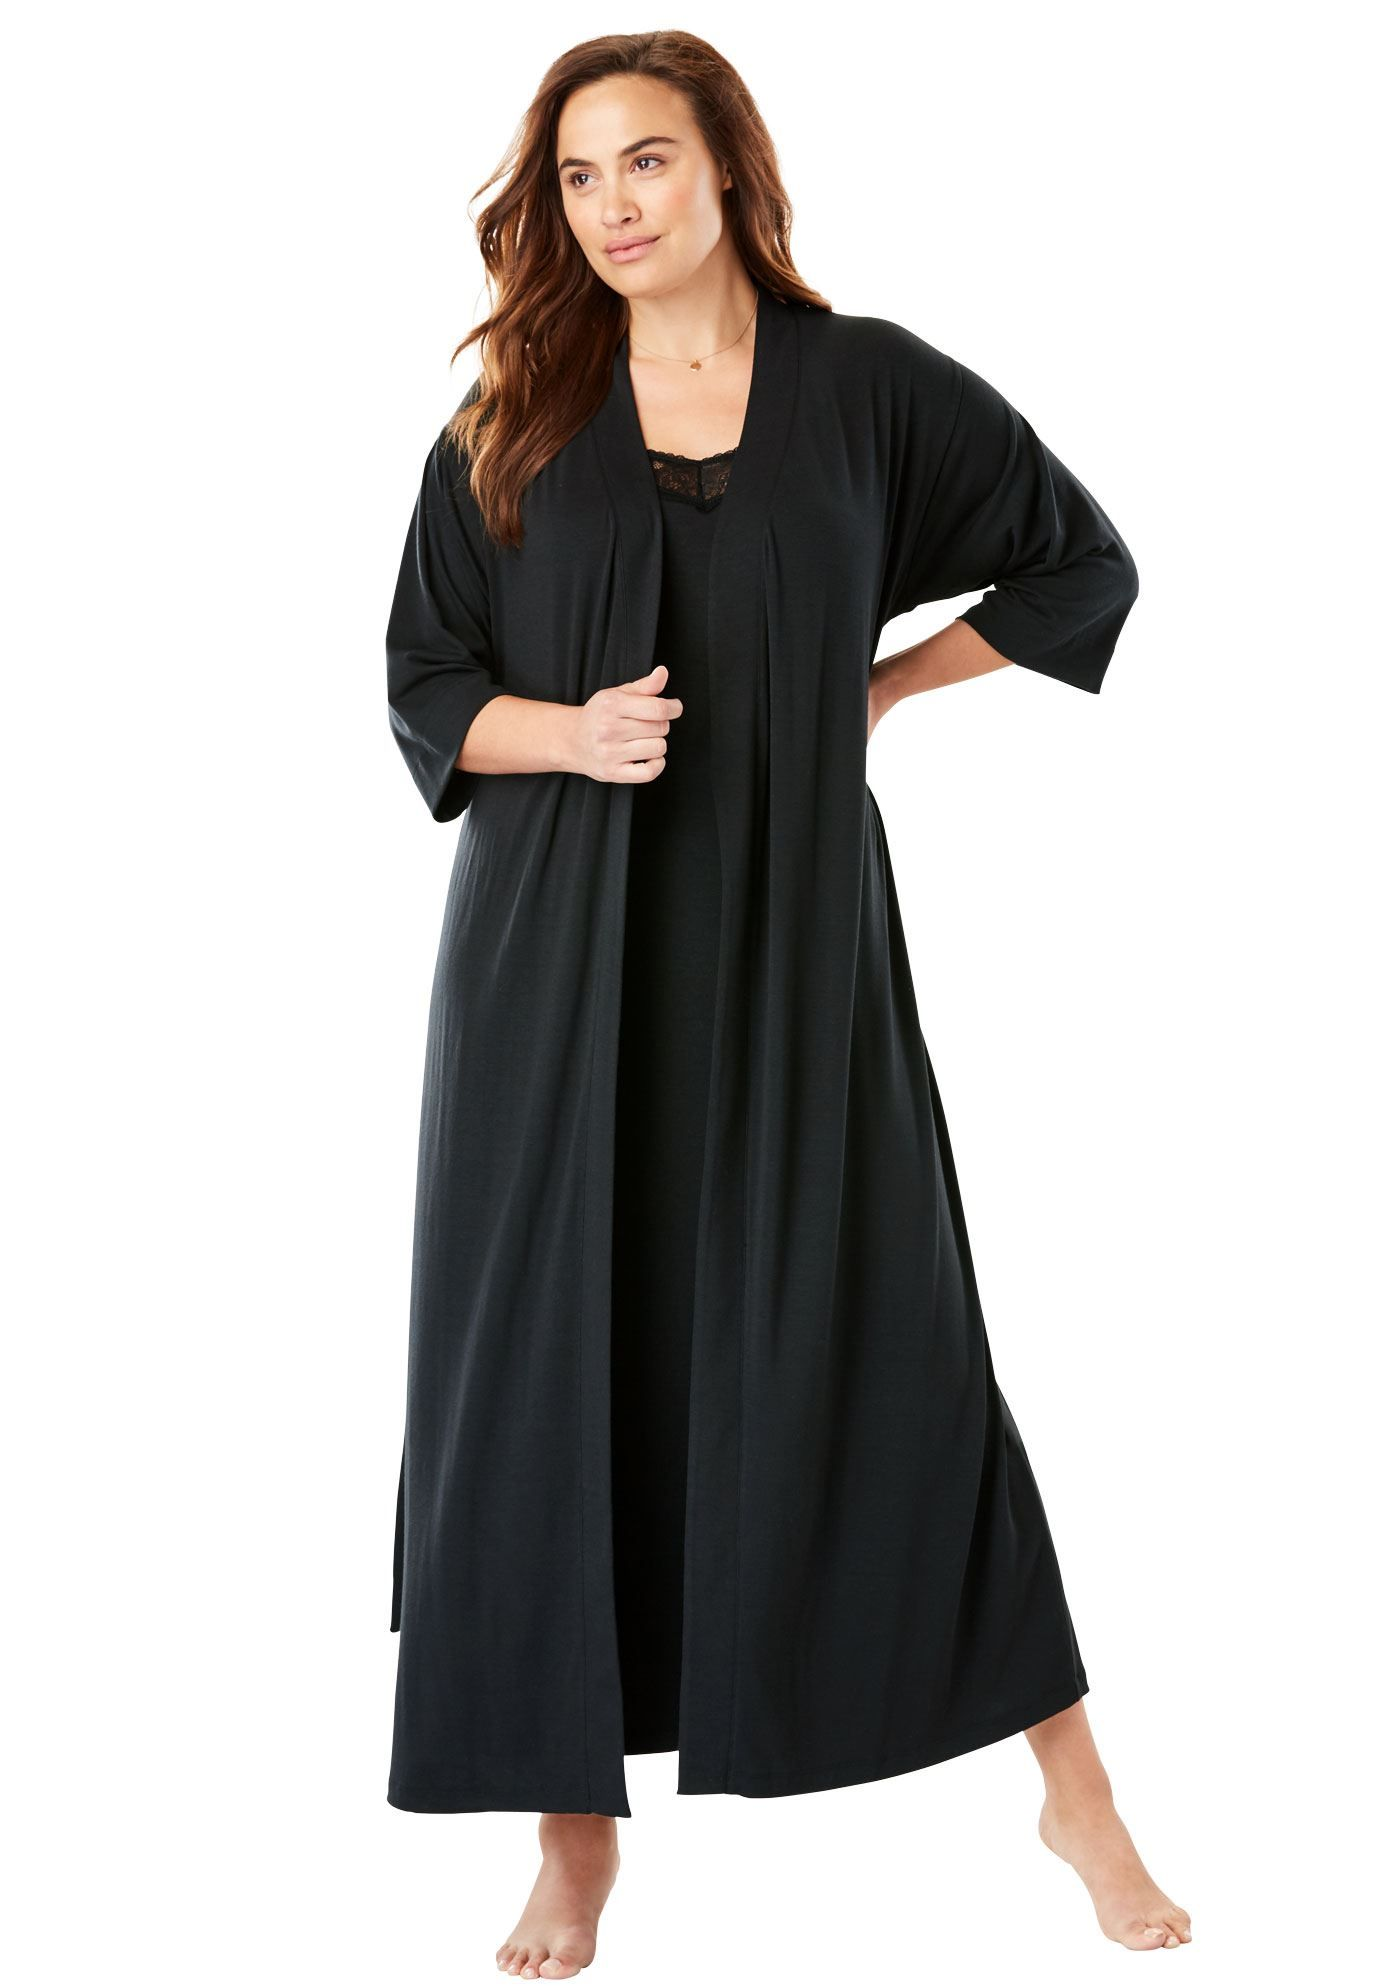 Lace Trim Long Nightgown Robe Set Womens Plus Size Clothing